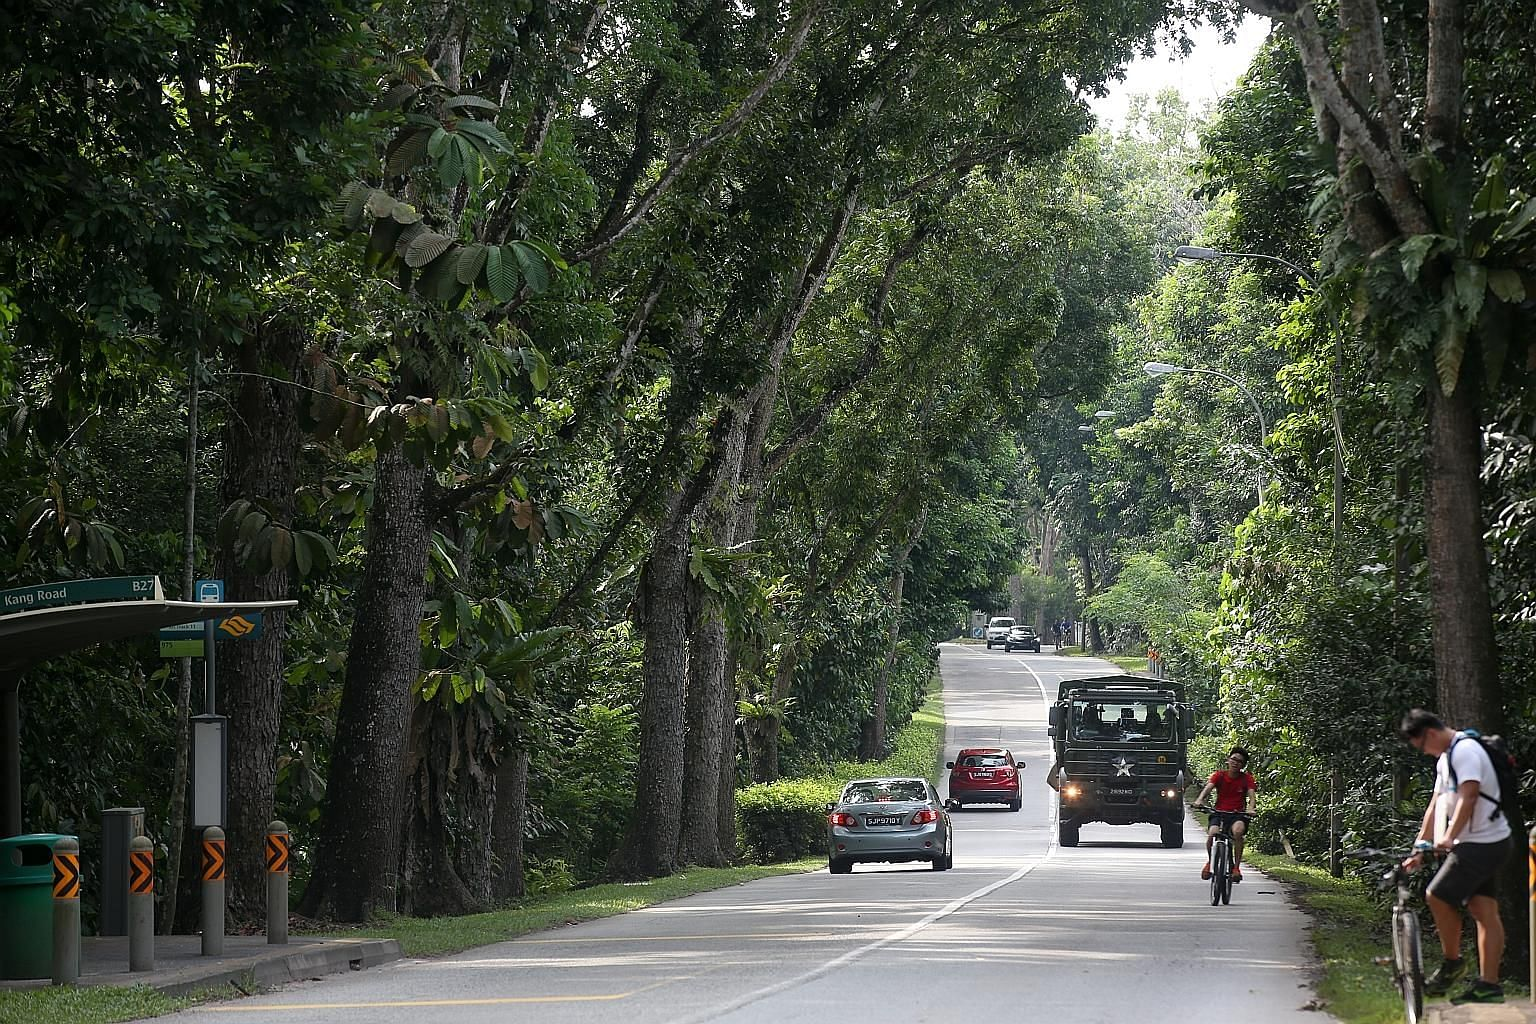 Besides giving shade and beautifying our roads, trees also help to slow stormwater run-off and help soil absorb more rainwater, reducing the strain on the drainage network.